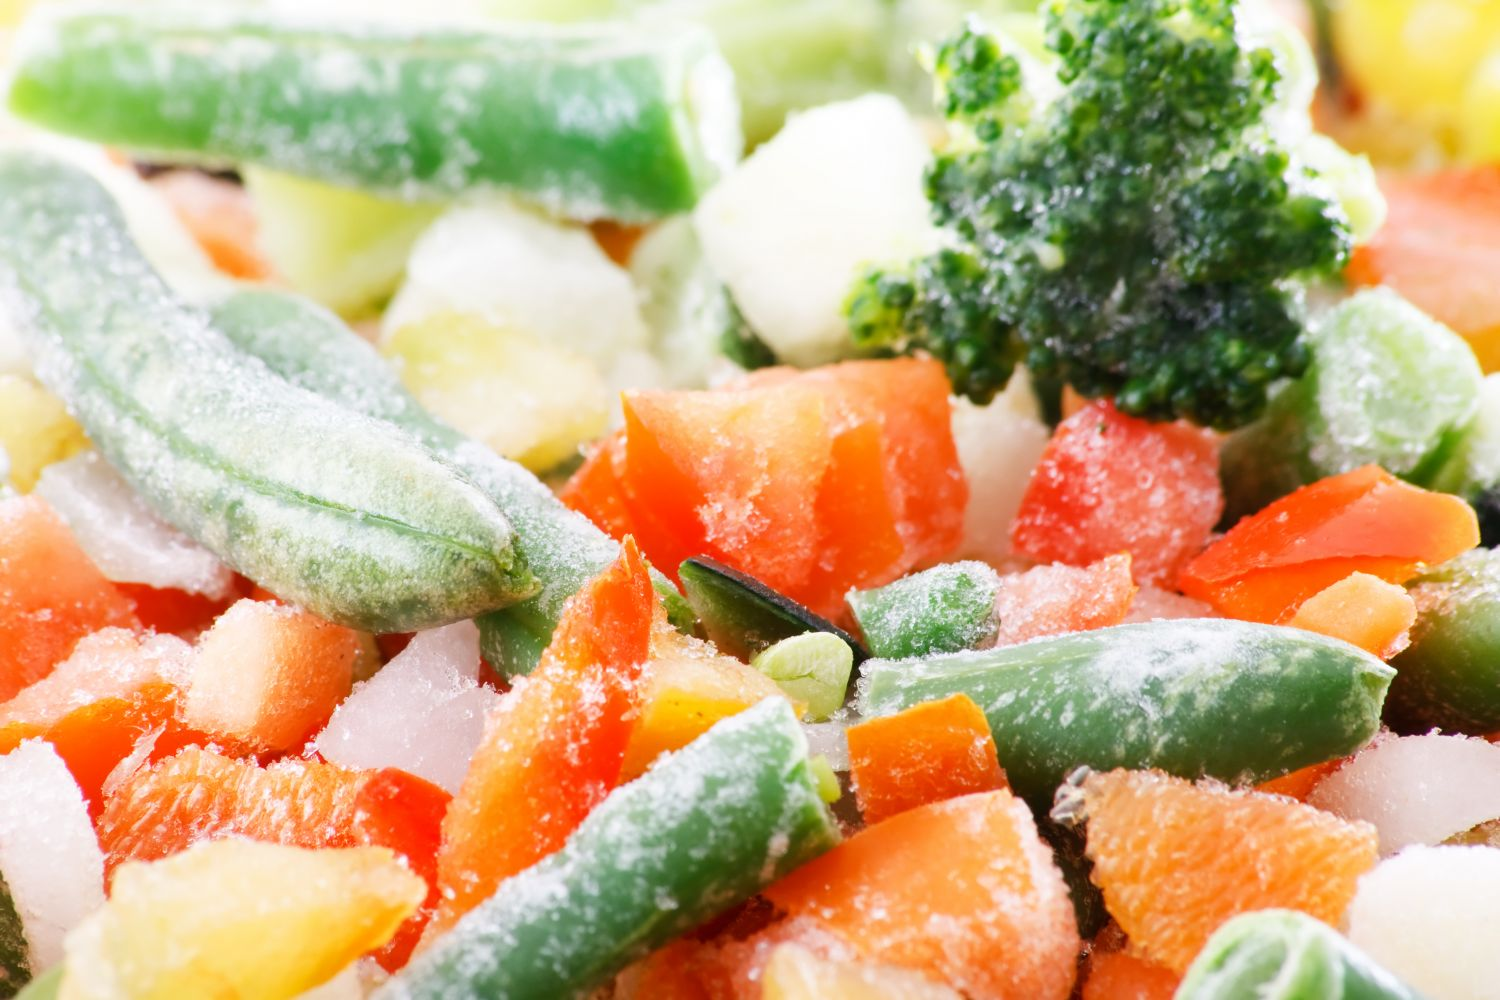 2.  Freezer Friendly.  Incorporate food that is better suited to freezing and reheating.